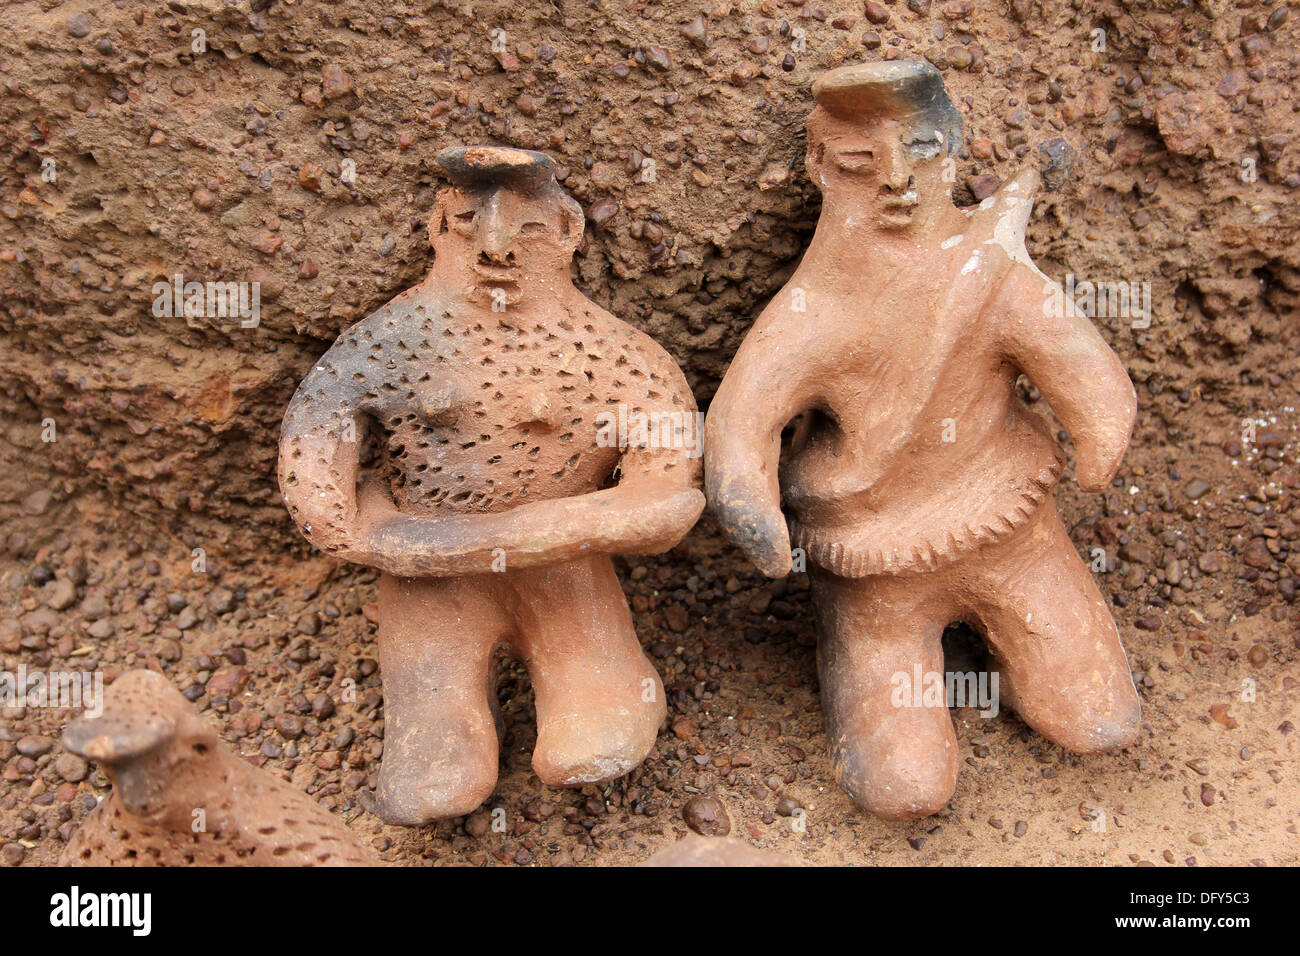 Traditional Pottery Figures Of The Lobi People Of Ghana and Burkina Faso - Stock Image